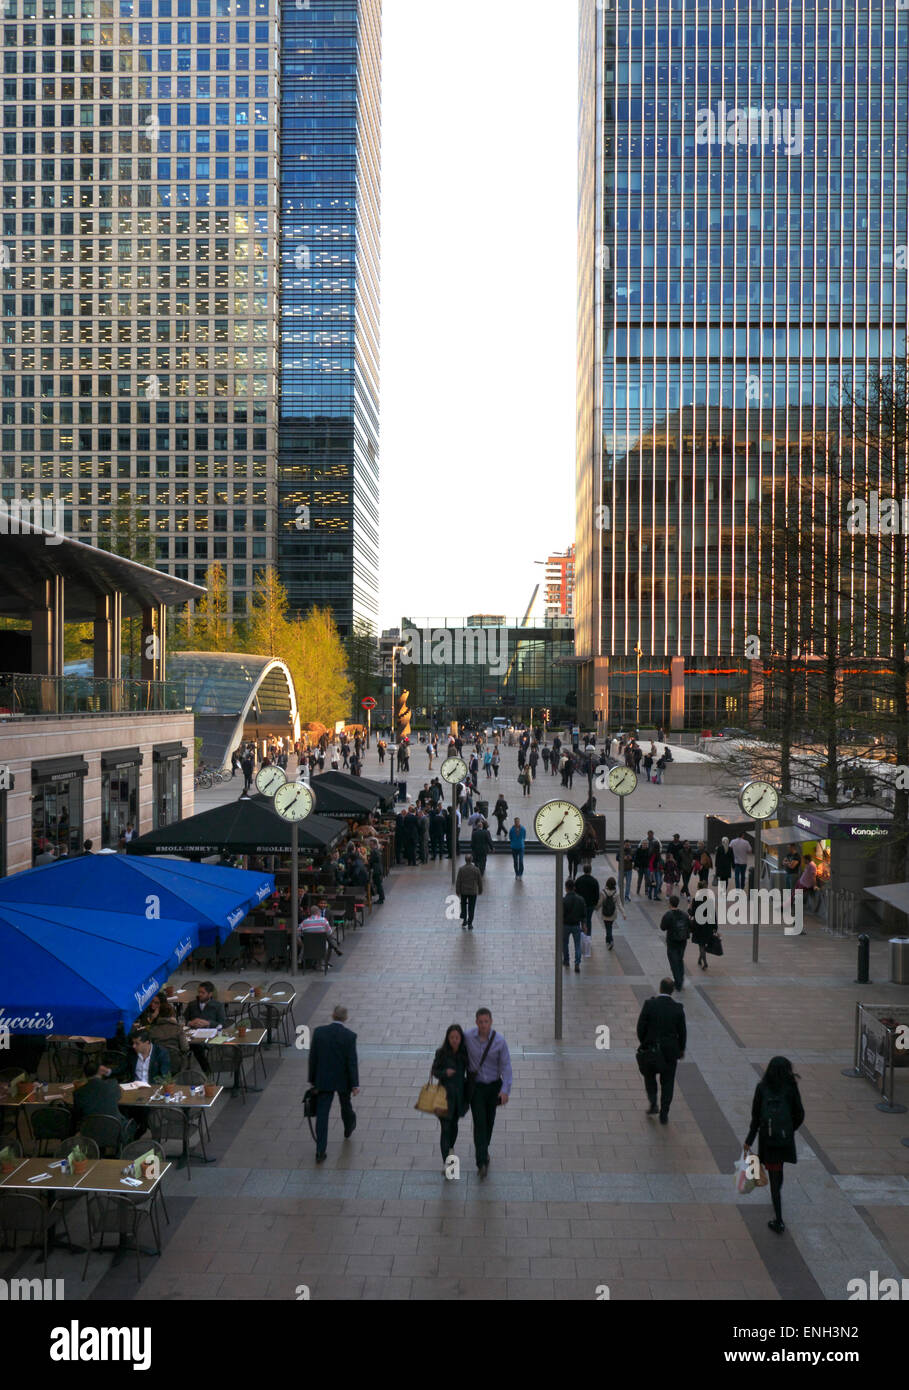 Canada Square piazza in late afternoon sunshine Canary Wharf London - Stock Image